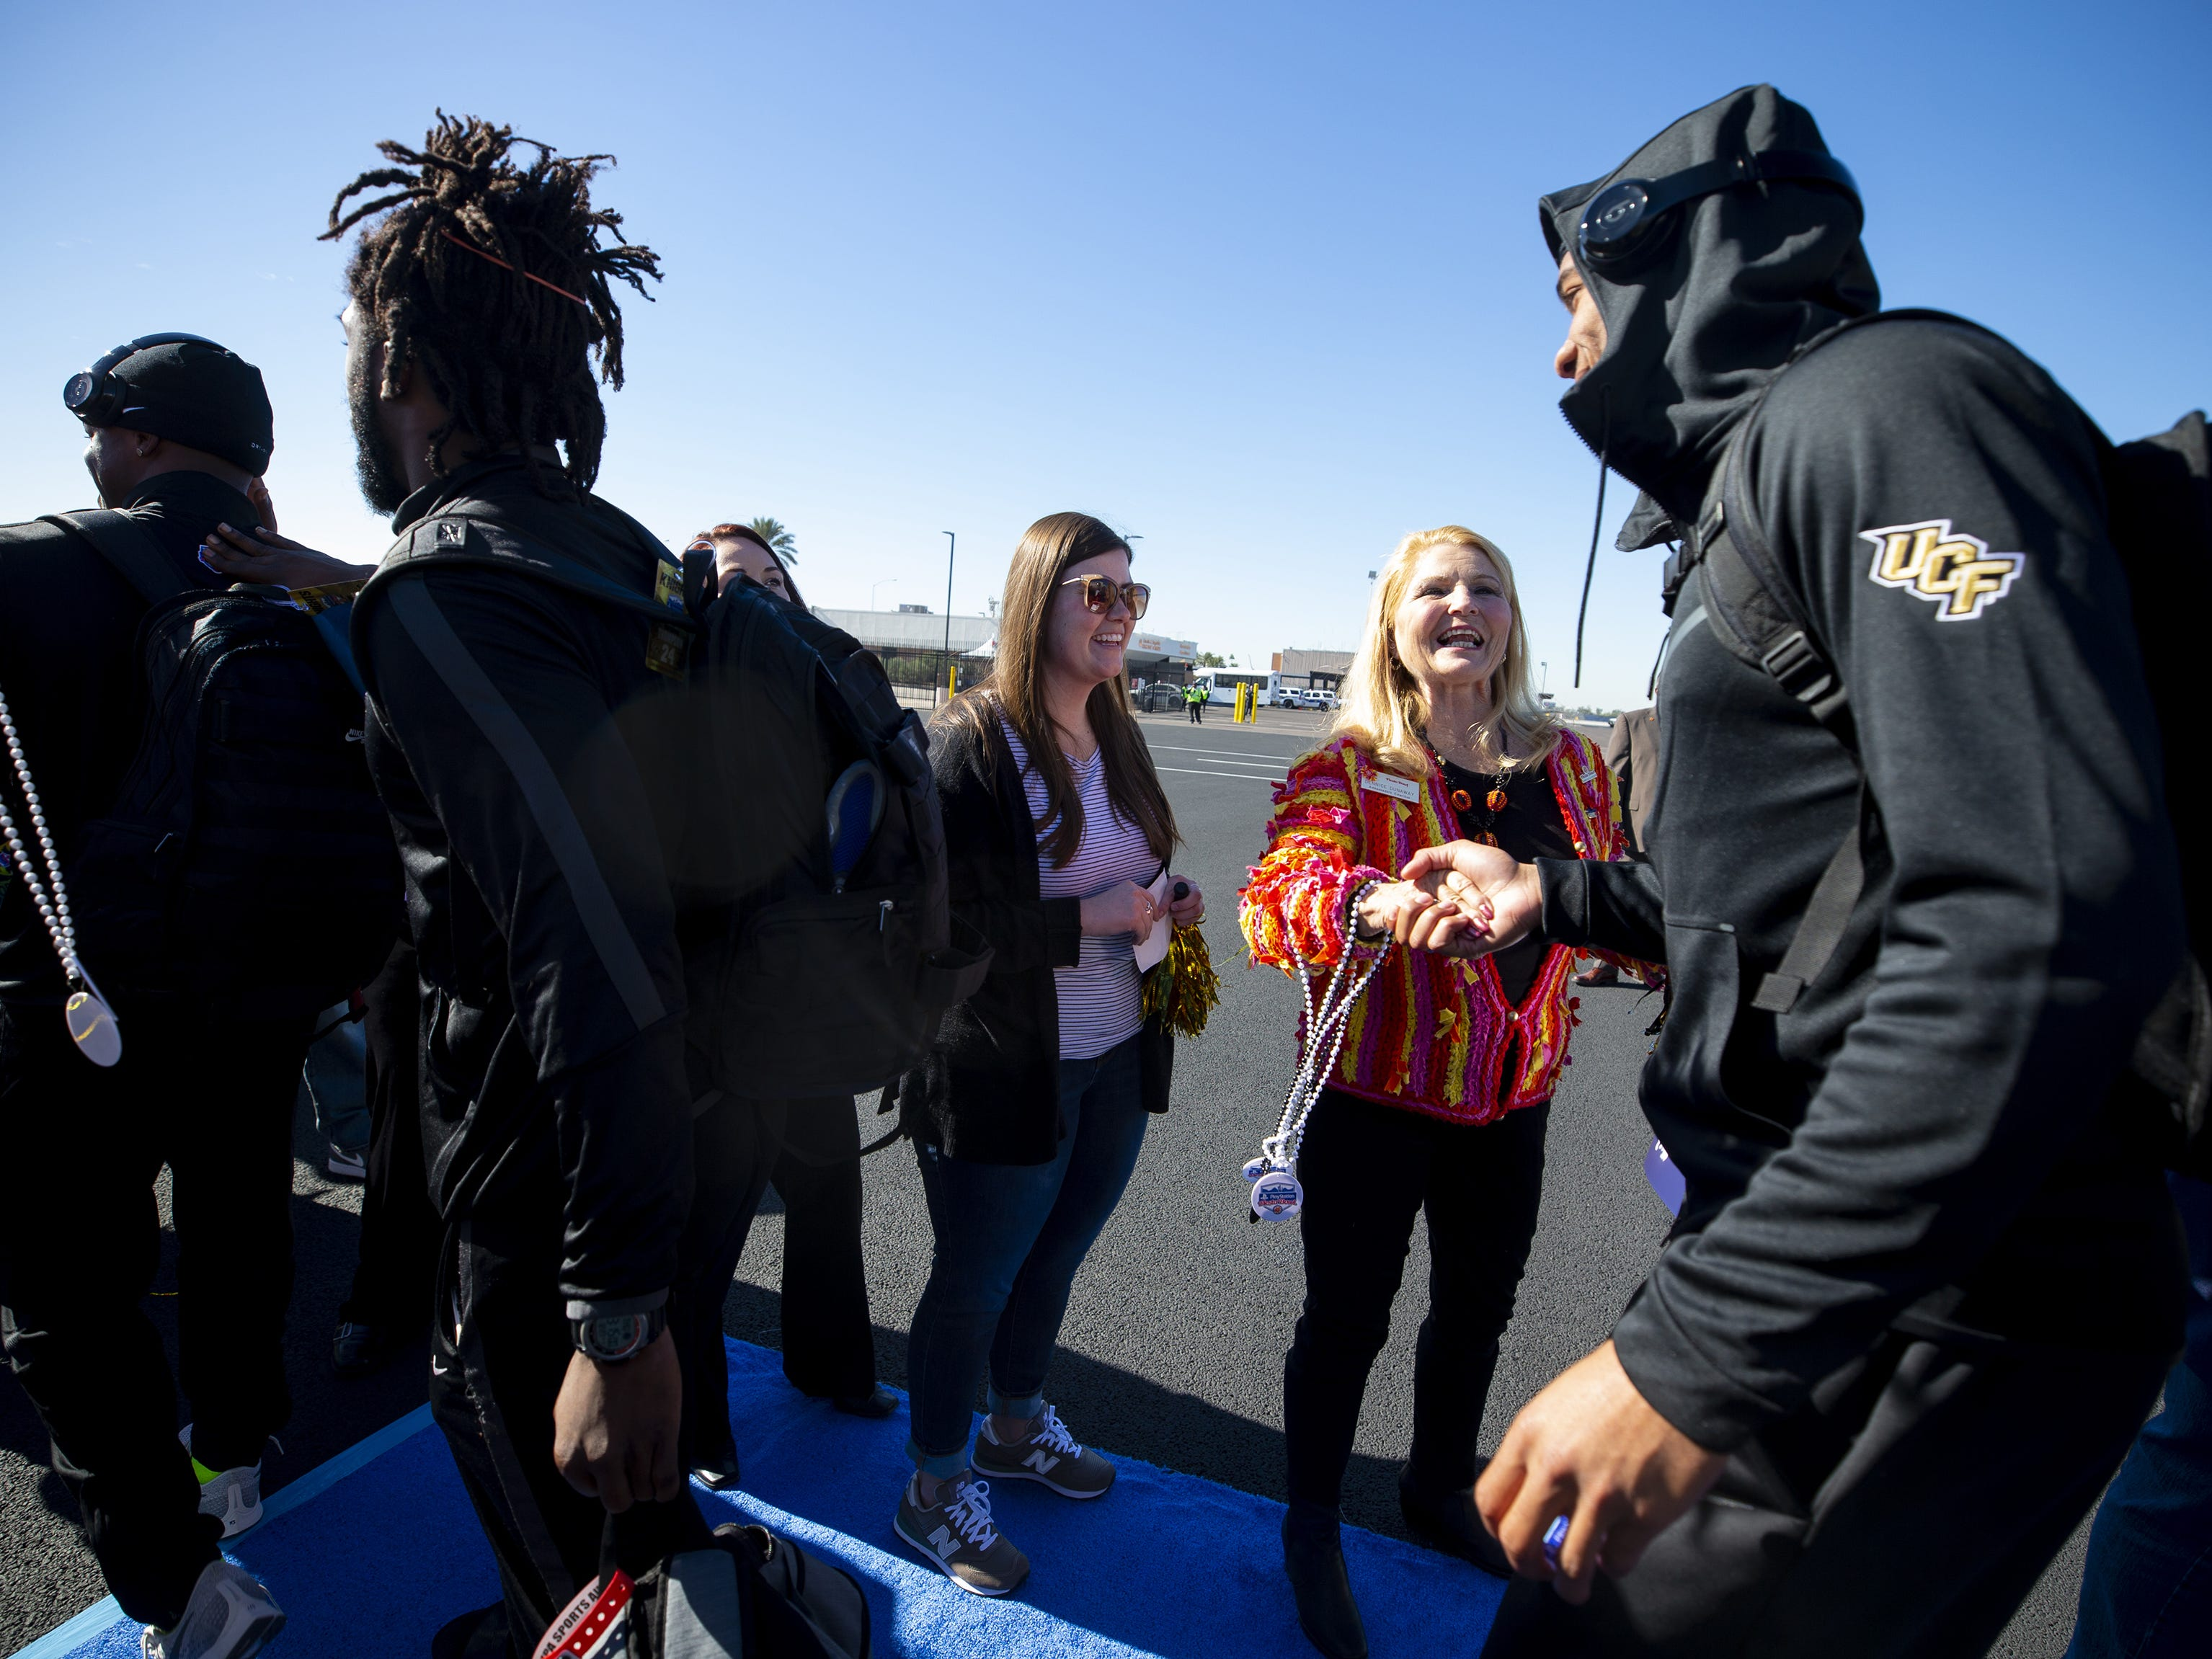 Fiesta Bowl ambassador Dennice Dunaway greets players from the Central Florida football team at Sky Harbor International Airport in Phoenix on December 27. Central Florida will face LSU in the Fiesta Bowl on New Year's Day.